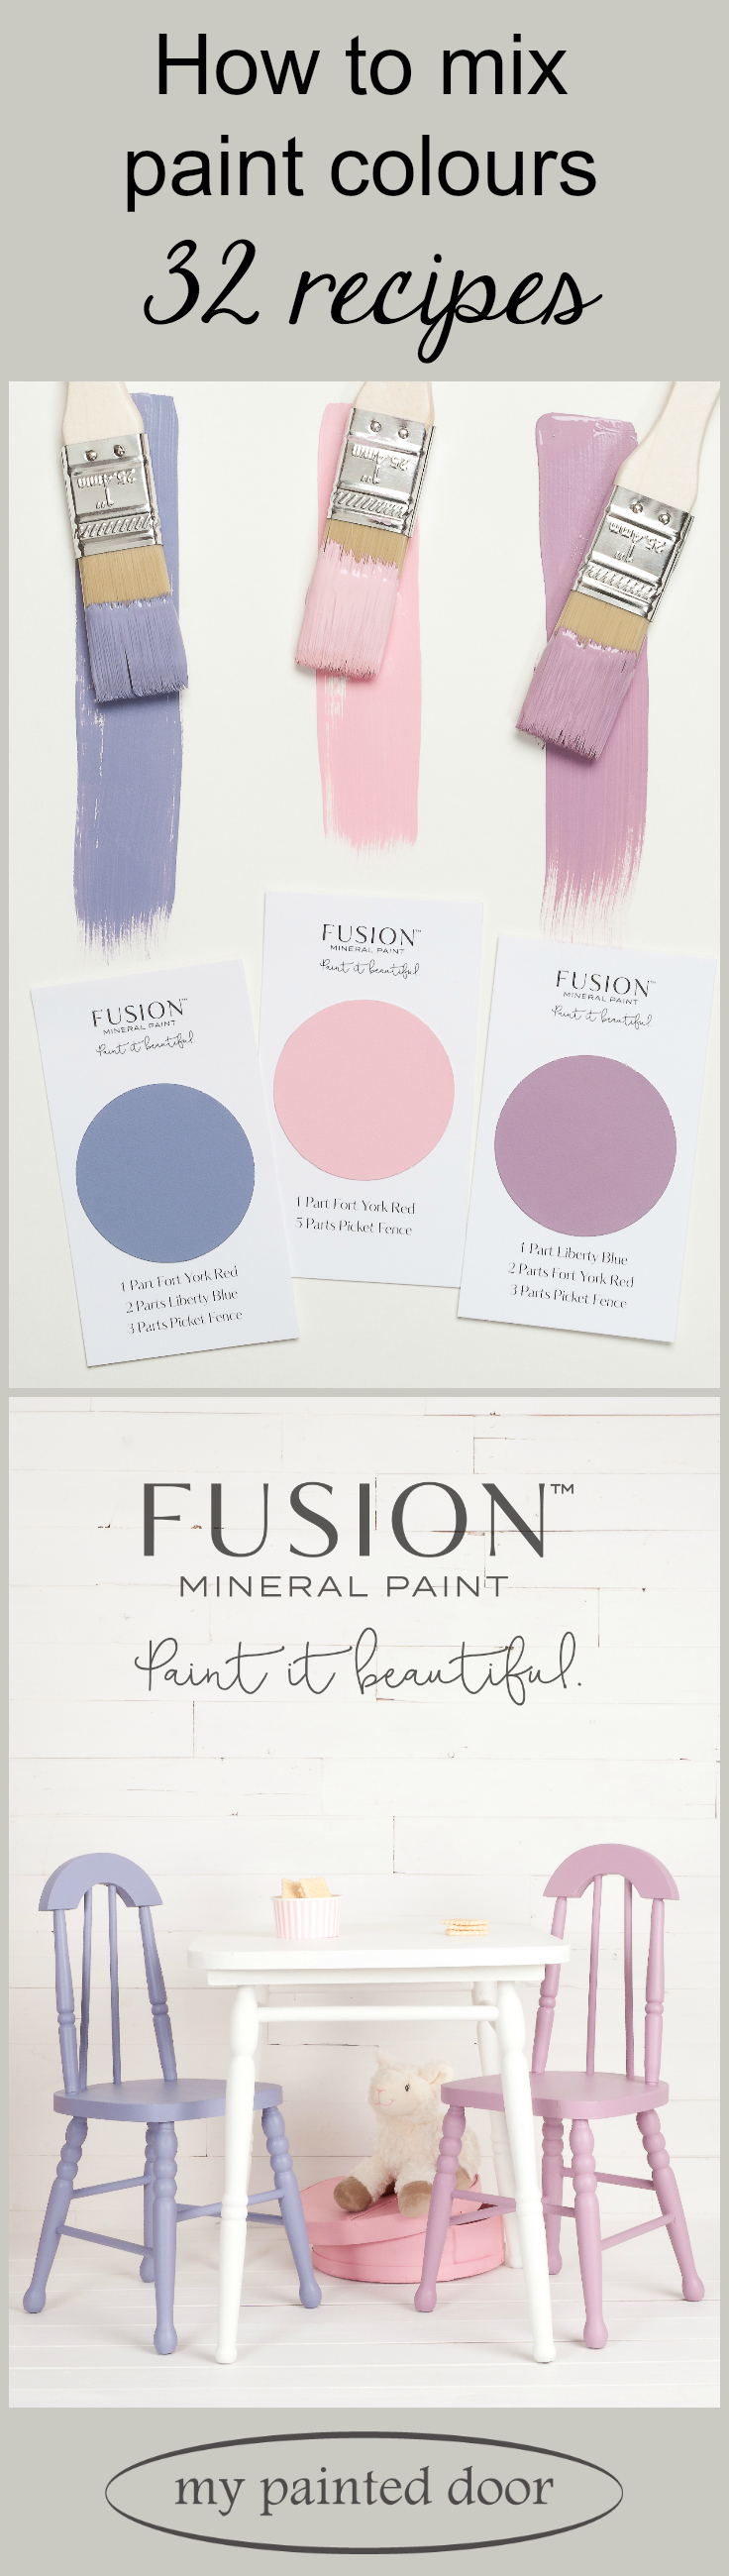 These little chairs and hat box were painted by mixing custom colours of Fusion Mineral Paint. Fusion offers 32 recipes that make mixing your own custom colours very simple!